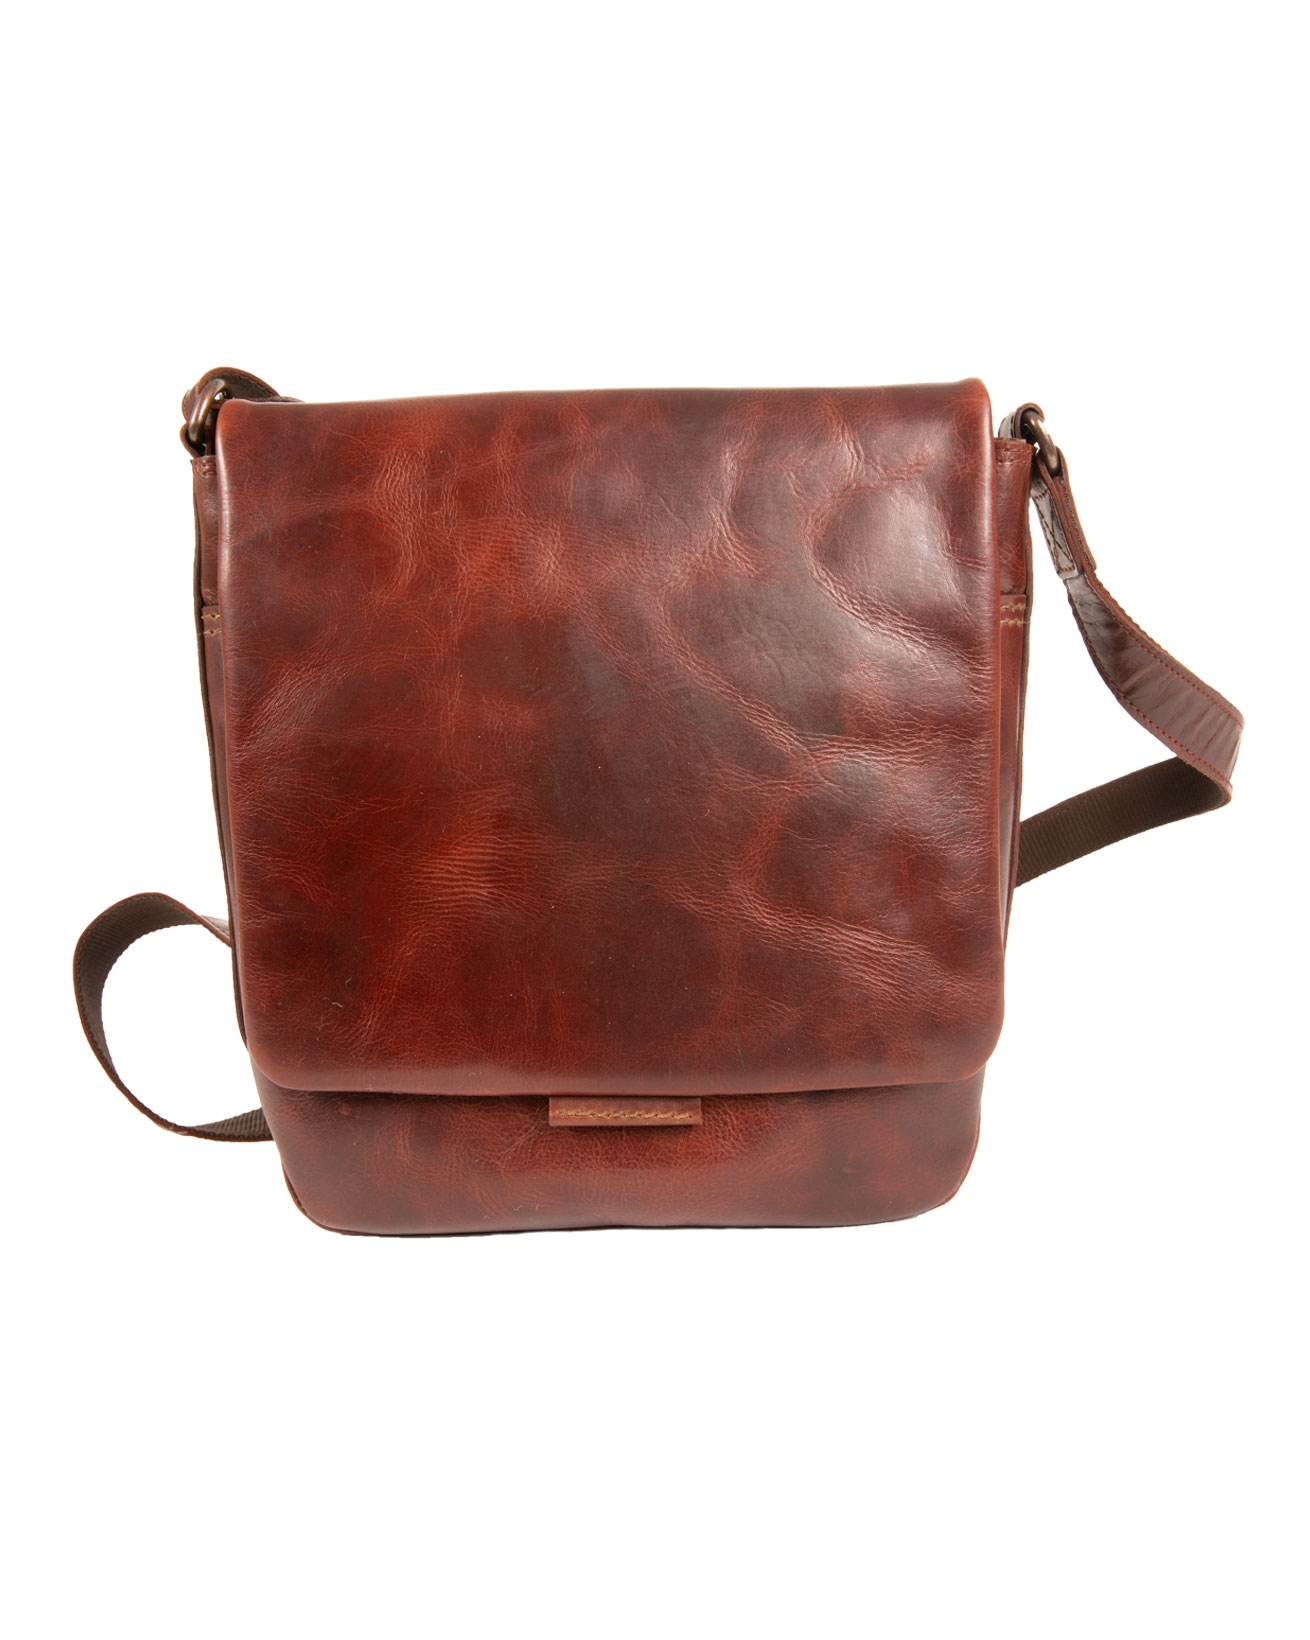 7542-burnished medium body bag-chestnut-front.jpg